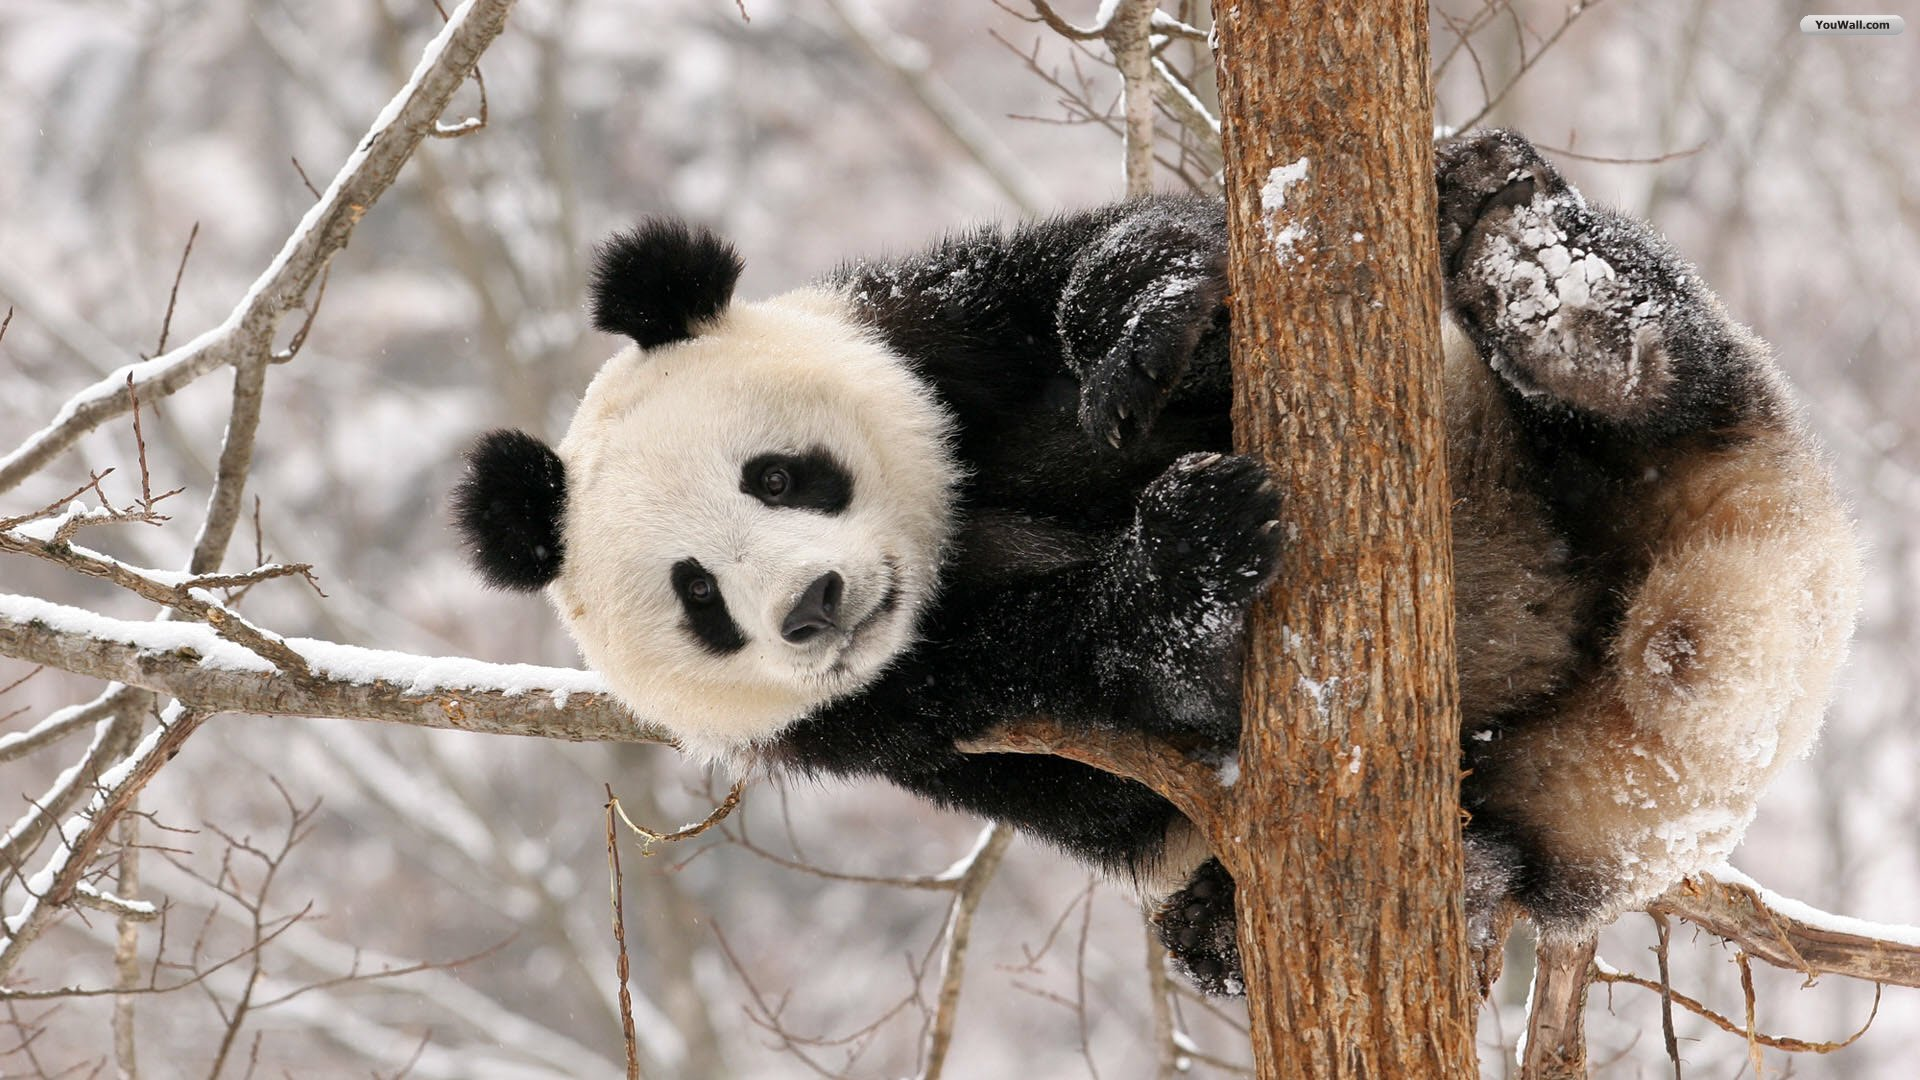 YouWall   Cute Panda Wallpaper   wallpaperwallpapersfree wallpaper 1920x1080